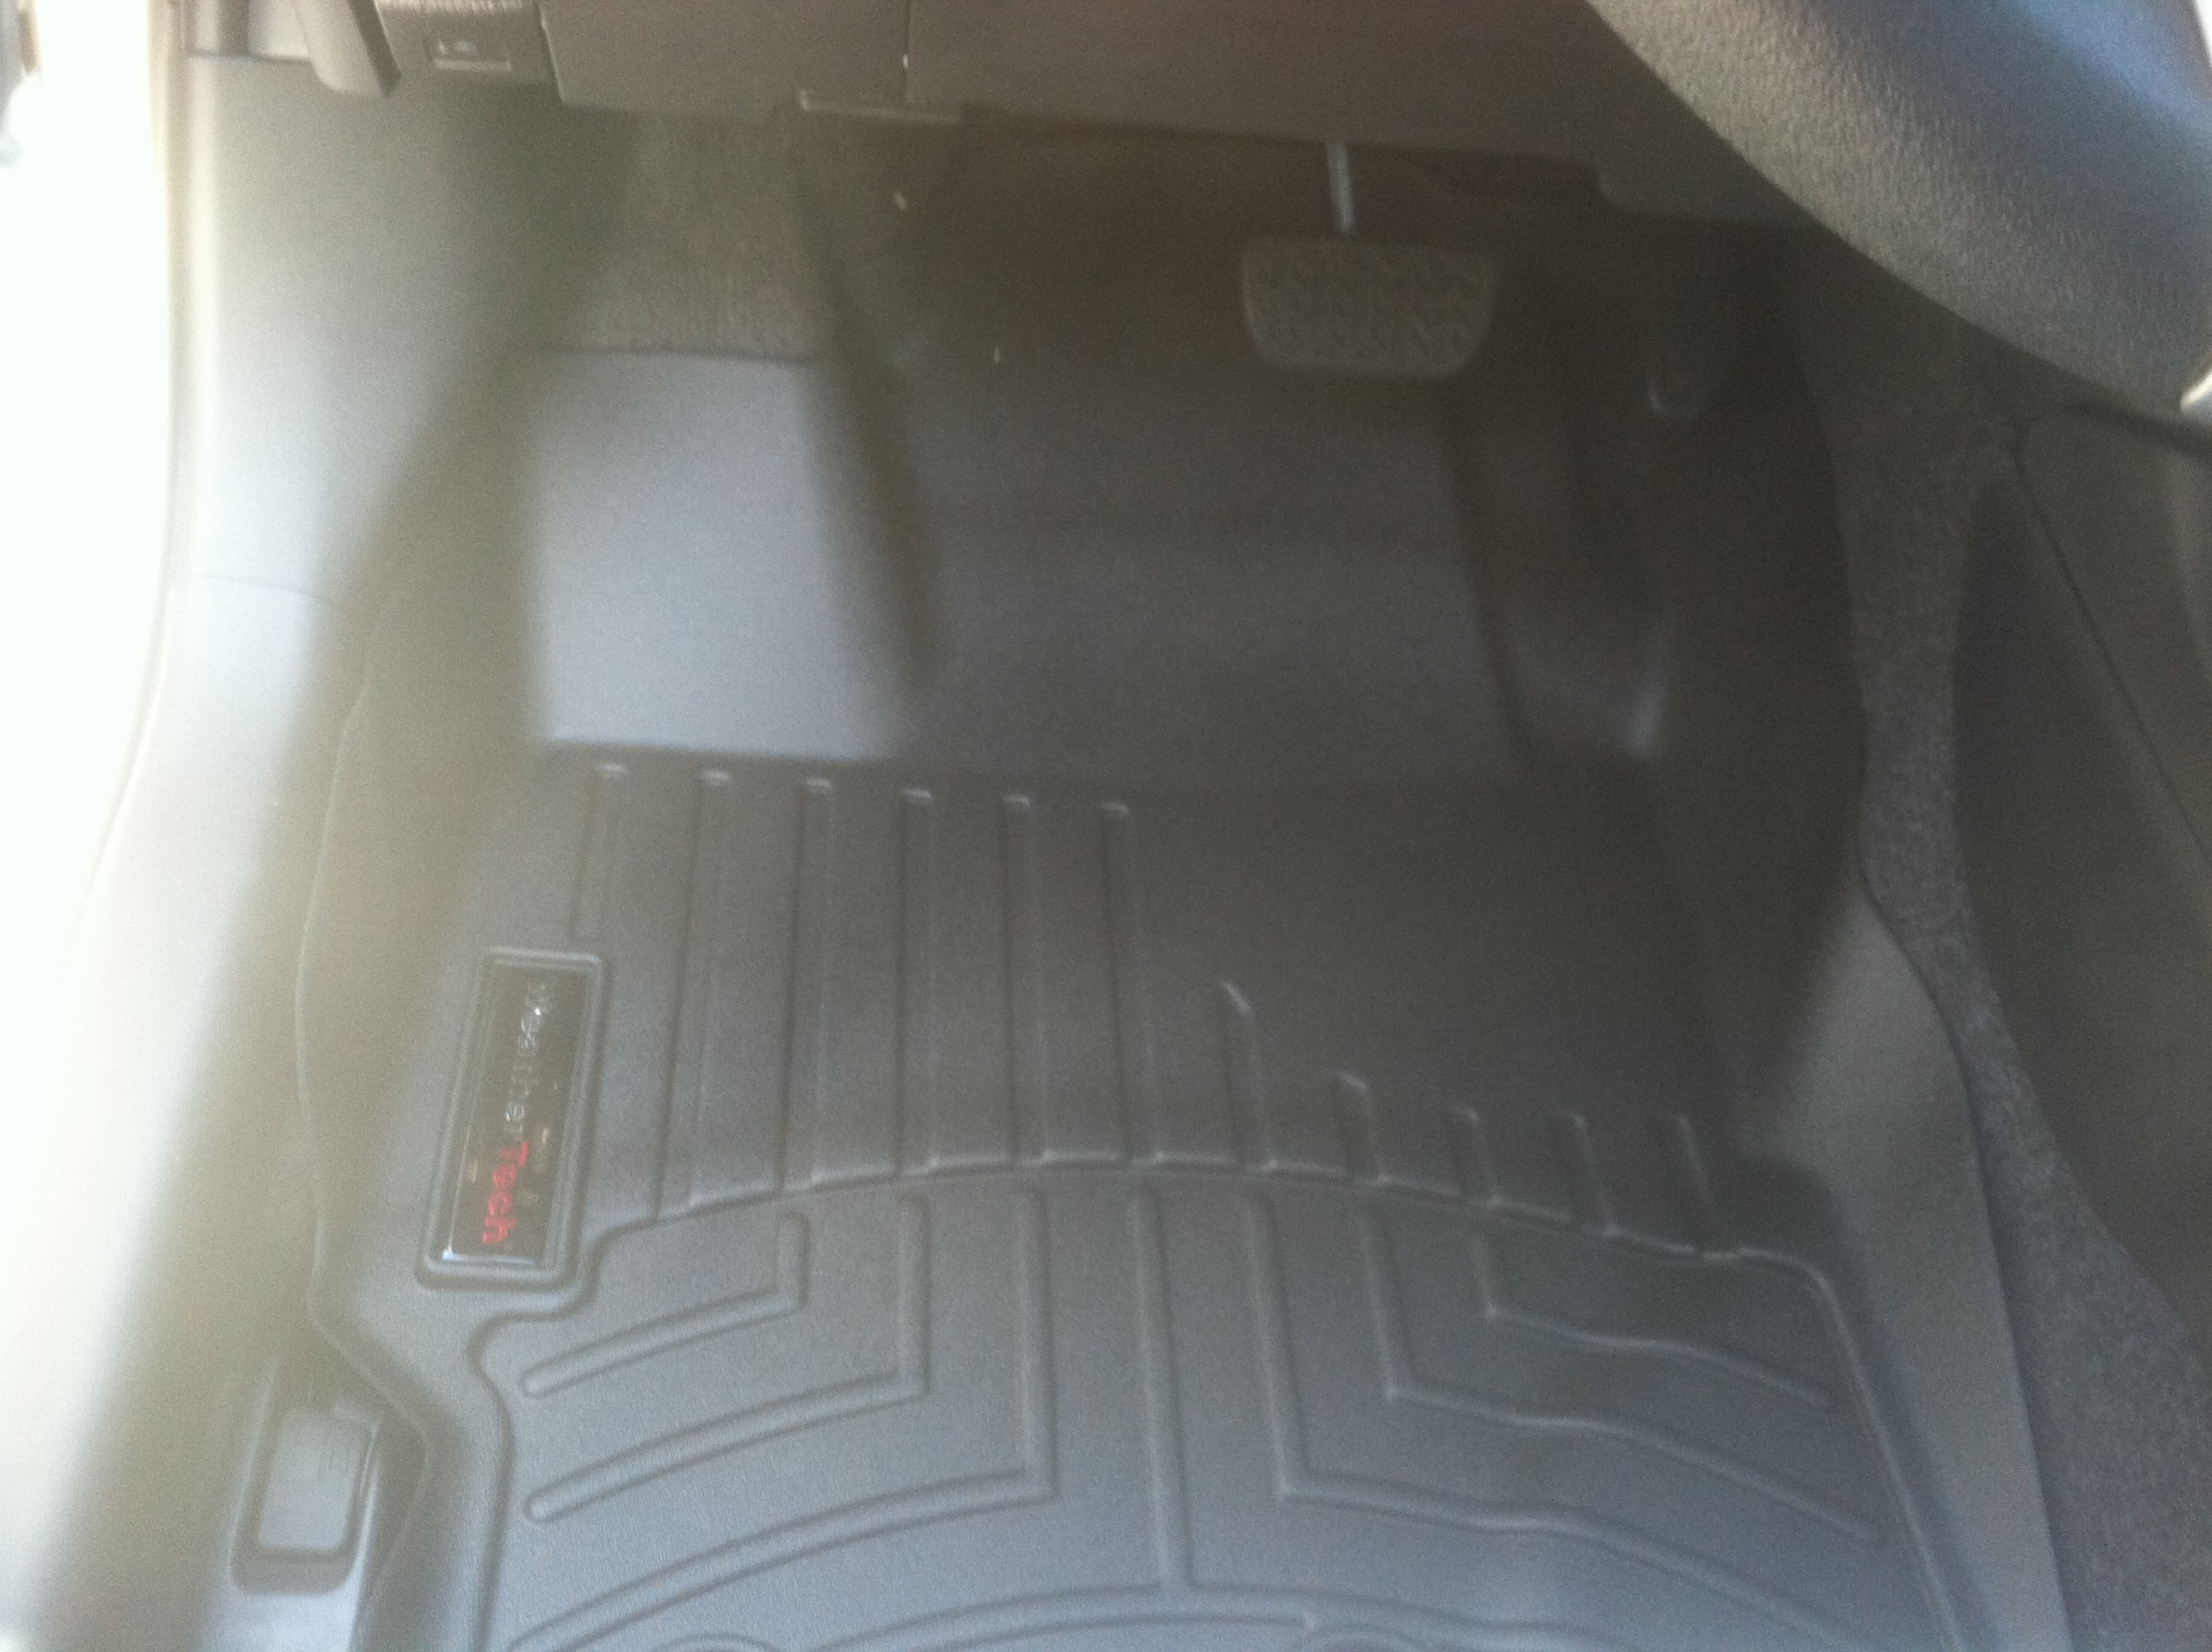 Weathertech floor mats amazon ca - View Attachment 40718 View Attachment 40717 Ordered A Set Of The Weathertech Floor Mats For The C And They Arrived Yesterday